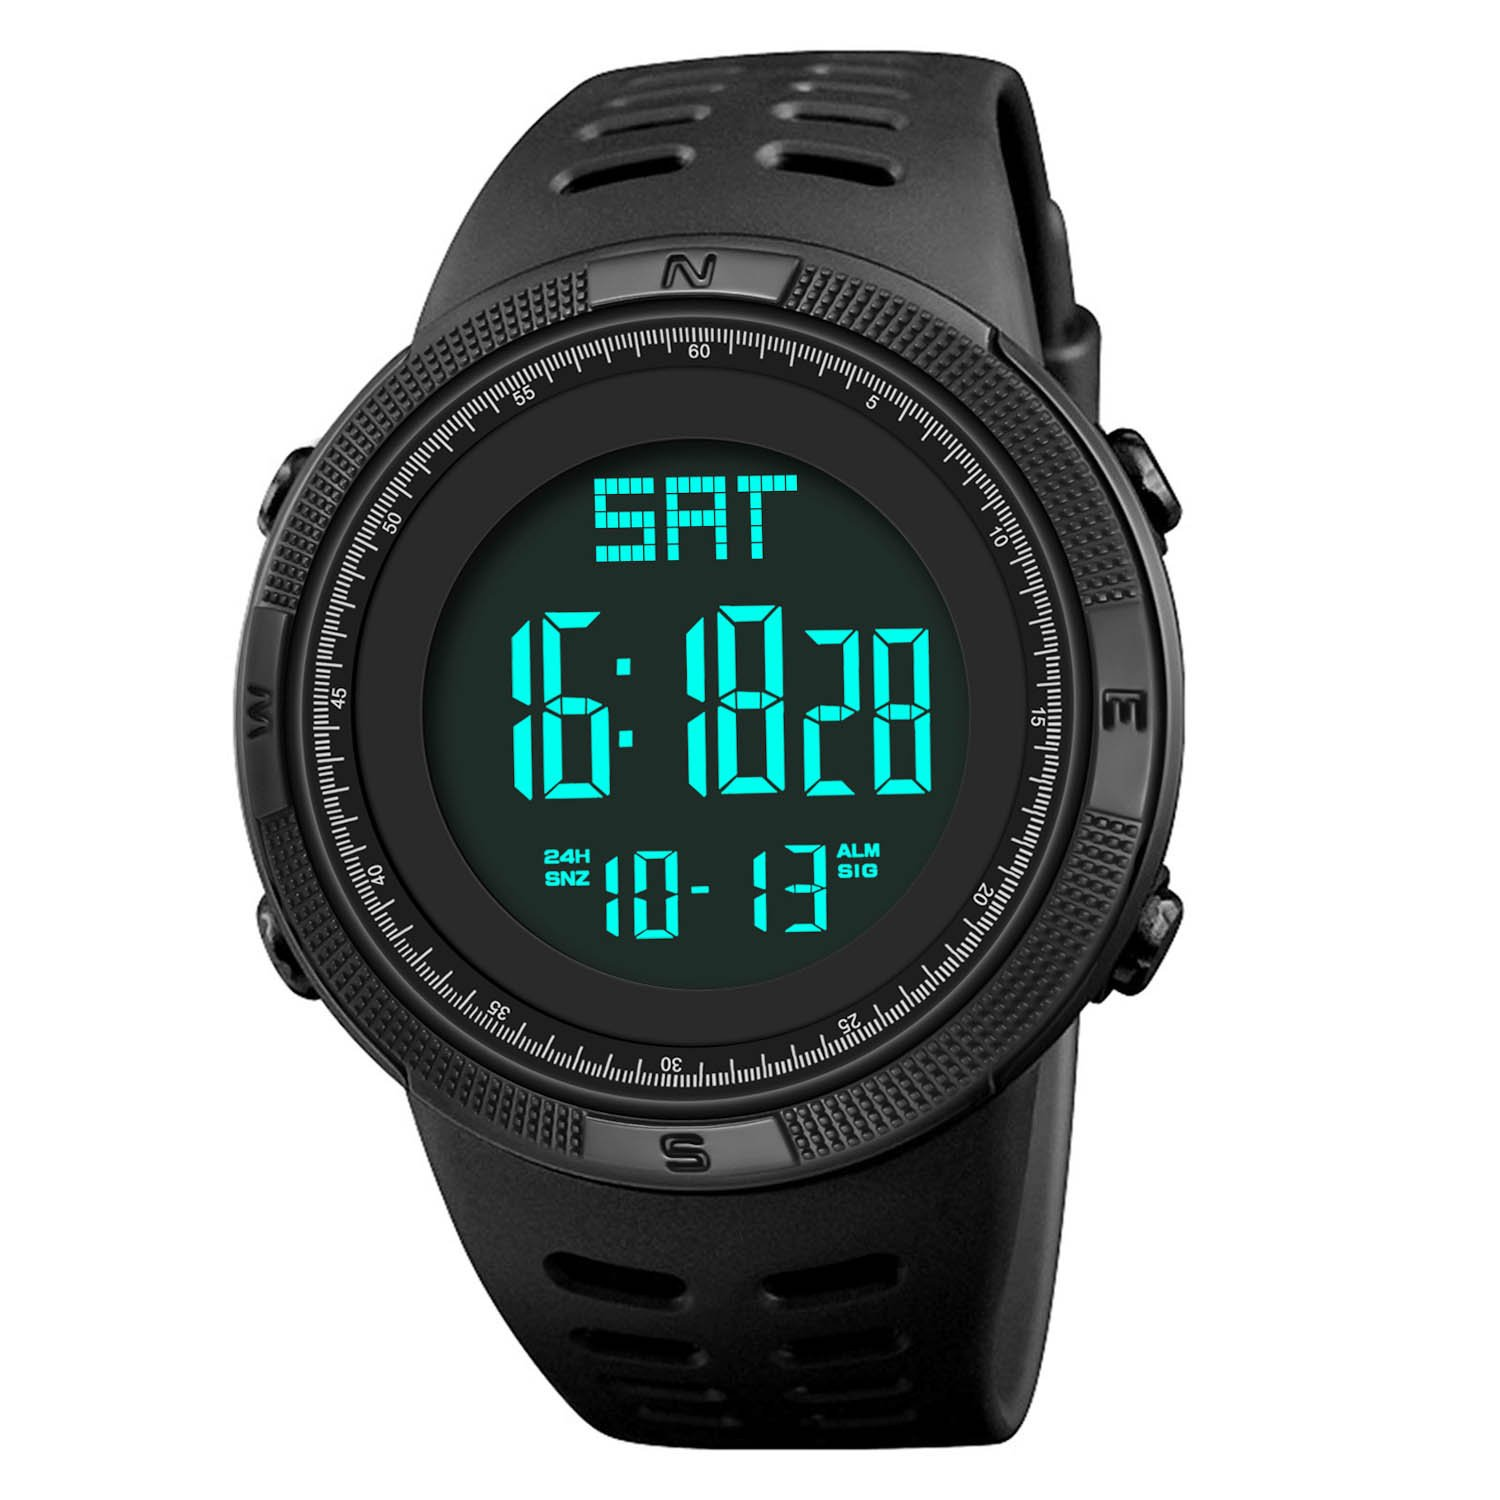 Men Digital Sports Watch, Military Multifunction Outdoor Electronic Waterproof Wrist Watch Fashion Resistant Casual Watchs with Luminous Calendar Backlight Stopwatch LED Screen - Black